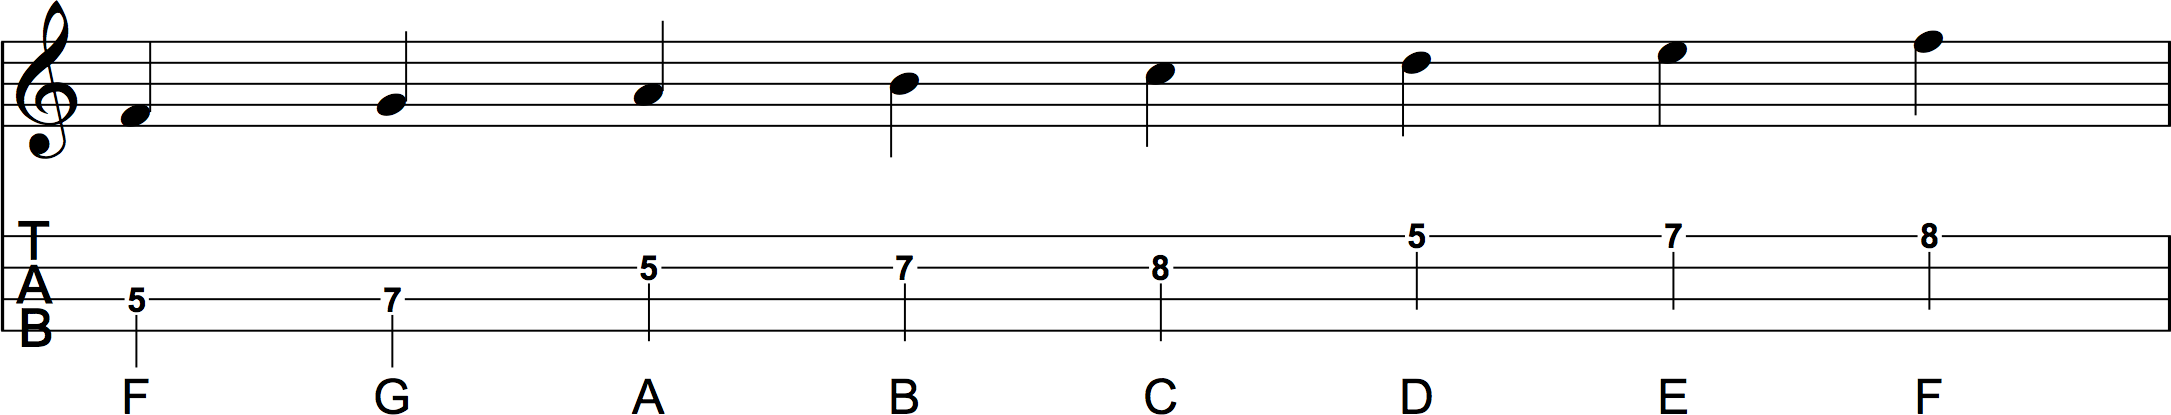 C Major Scale Position 3 Sheet Music and Ukulele Tab